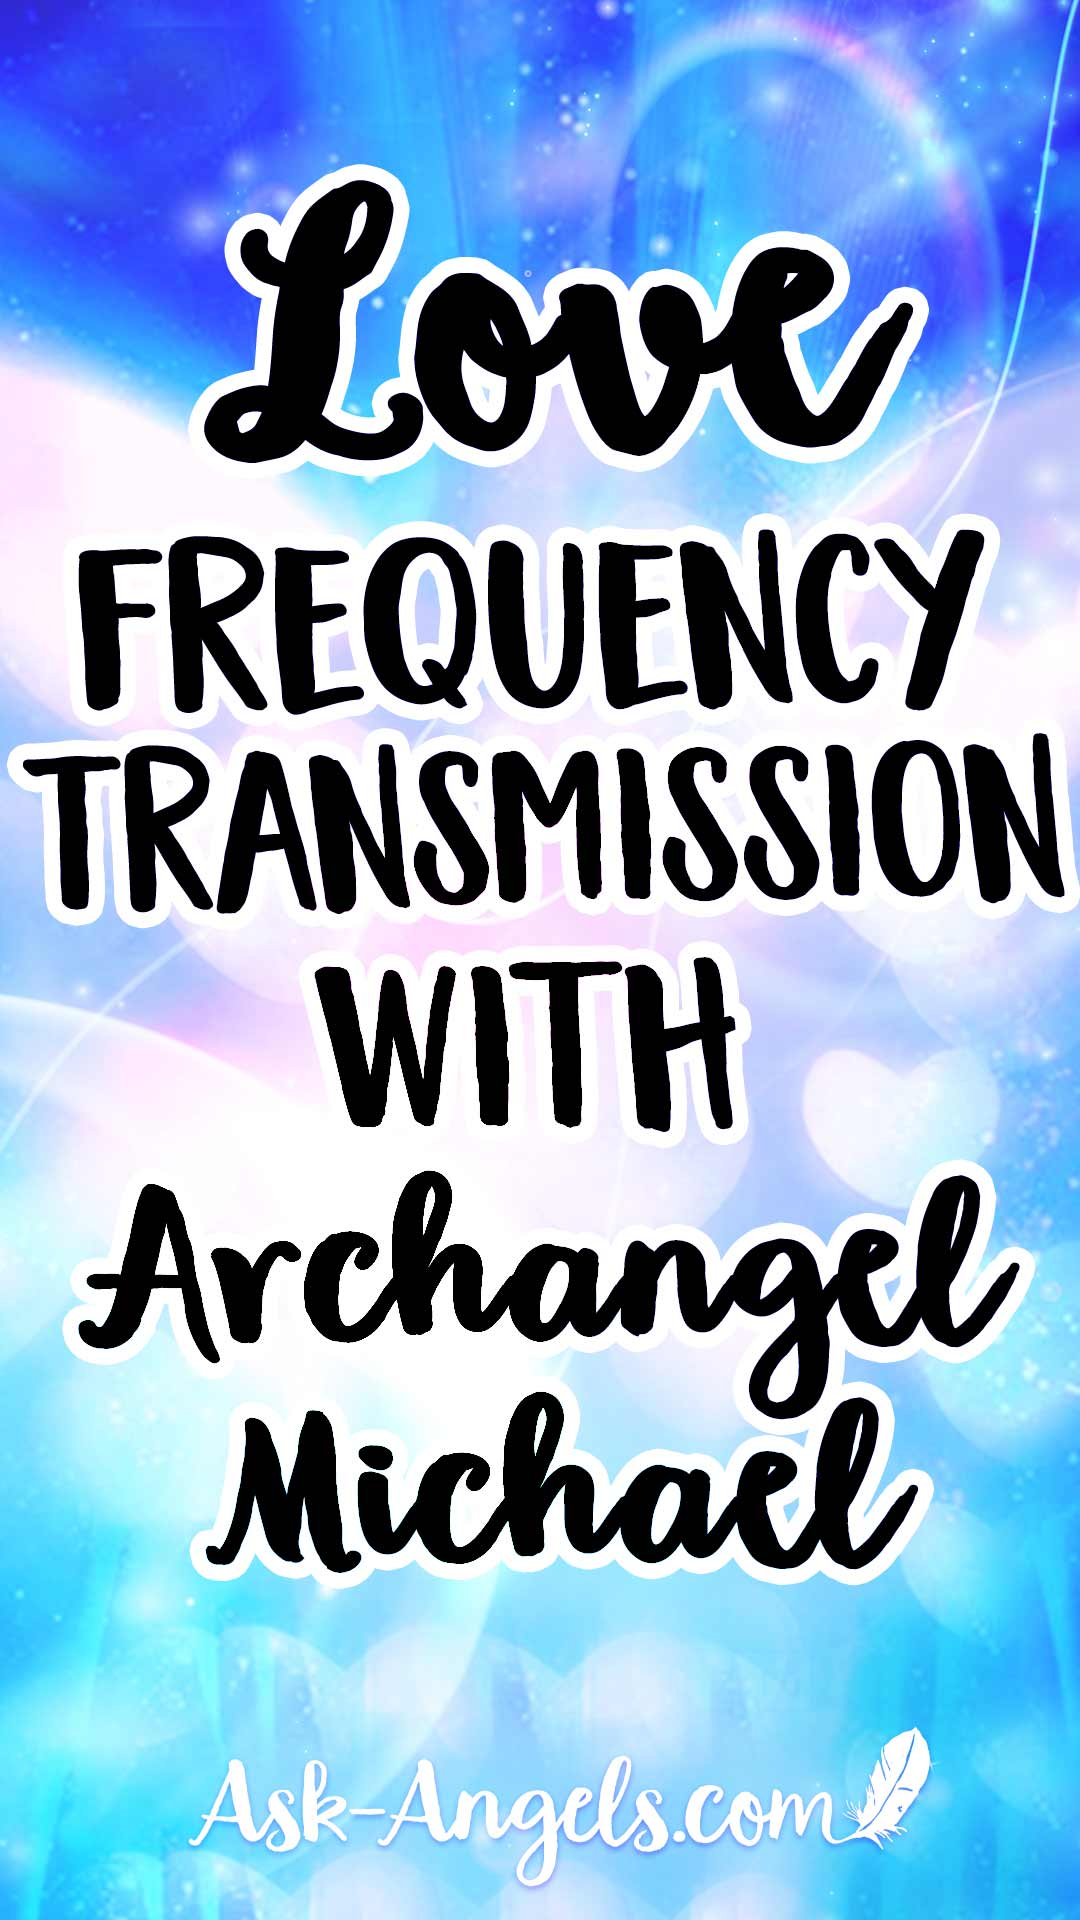 Channeled Love Frequency Transmission with Archangel Michael